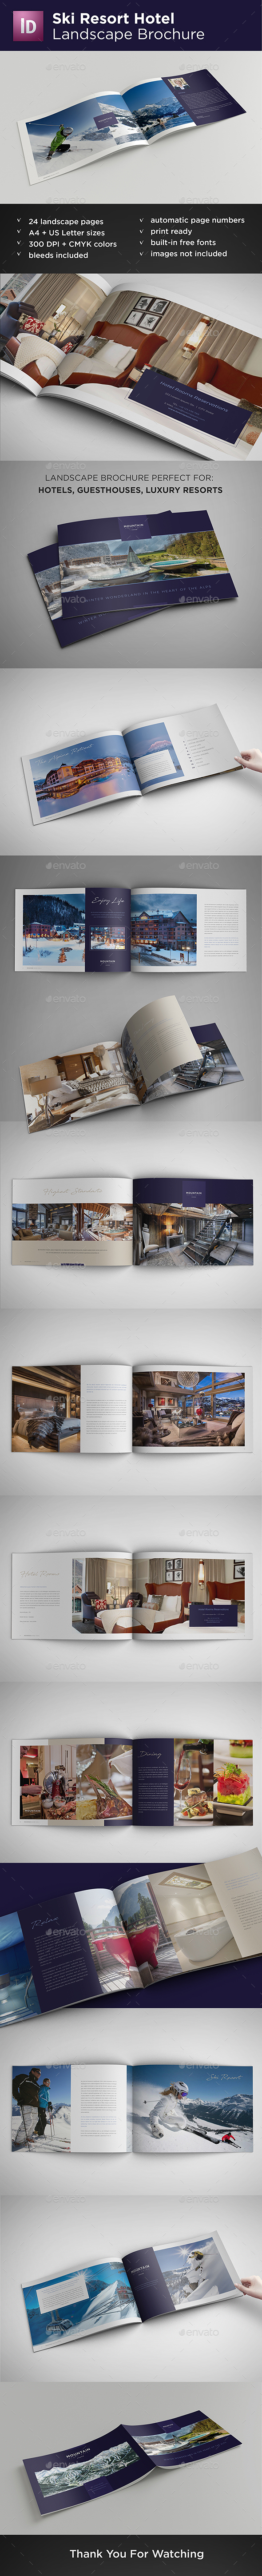 Ski Resort Hotel Landscape Brochure - Catalogs Brochures